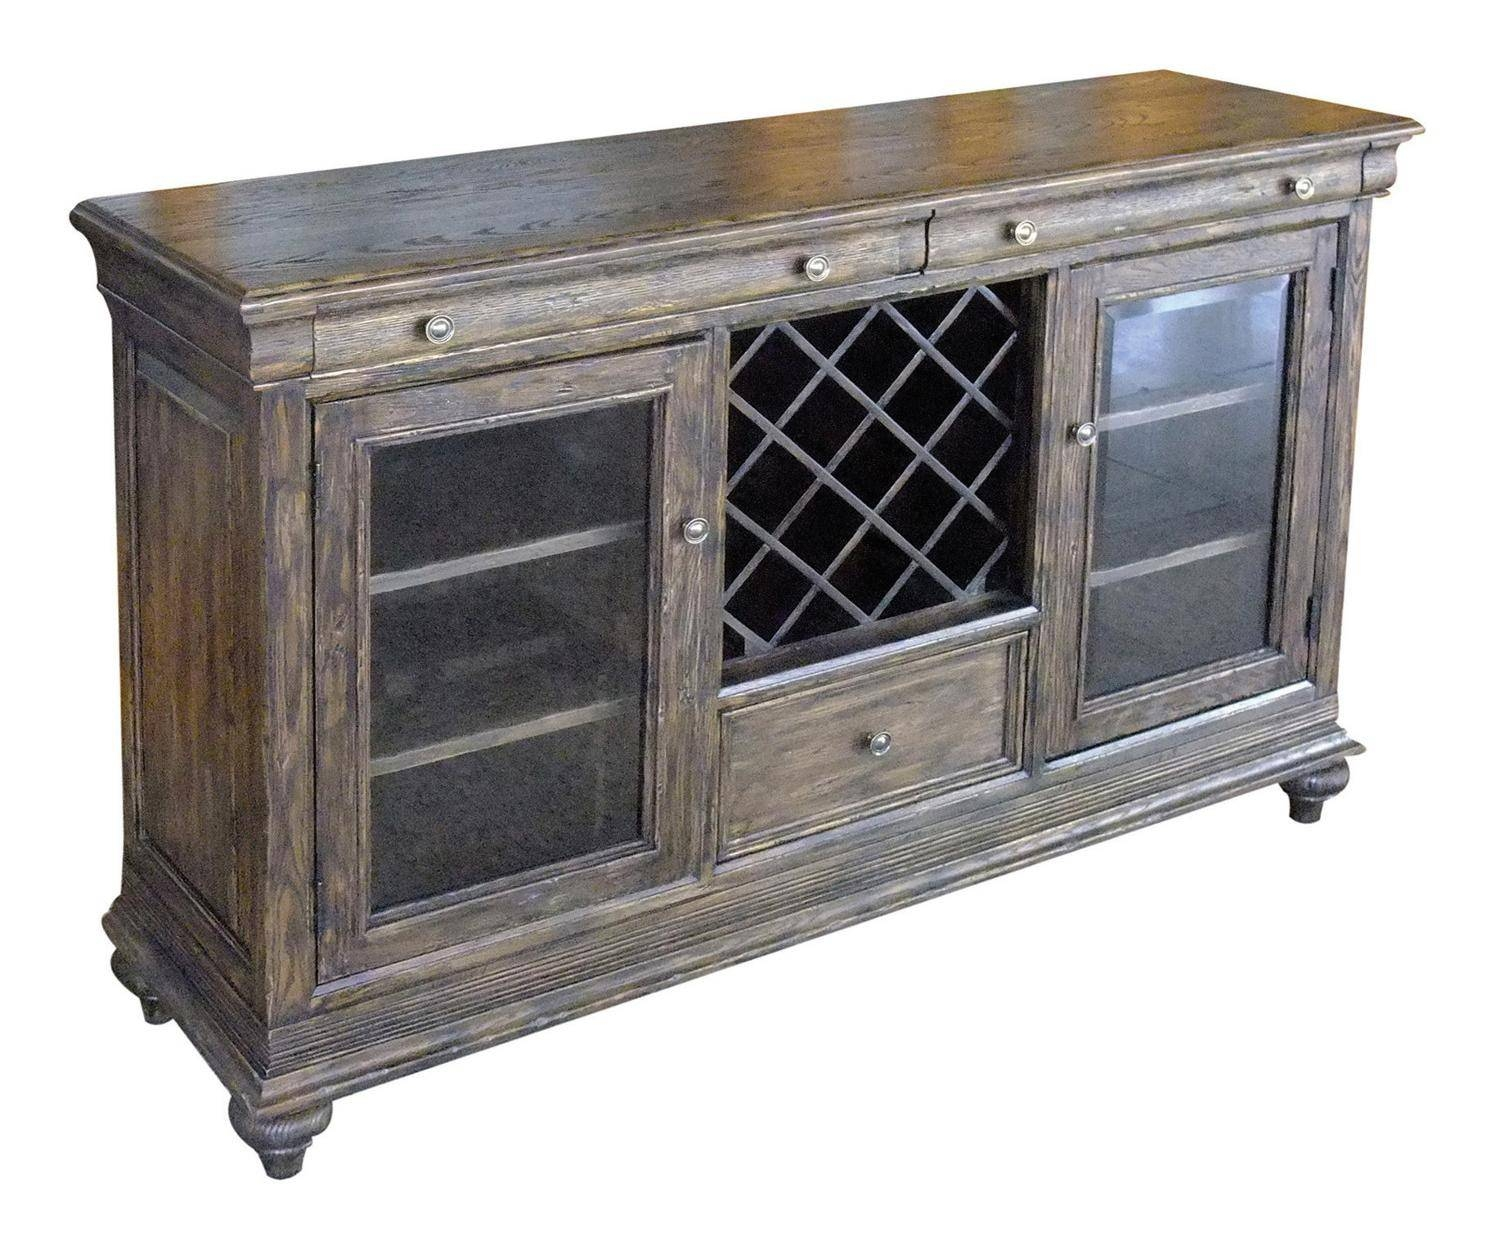 Kincaid Artisan's Shoppe Solid Wood Cabernet Sideboard In Black with regard to Sideboards With Wine Racks (Image 7 of 30)